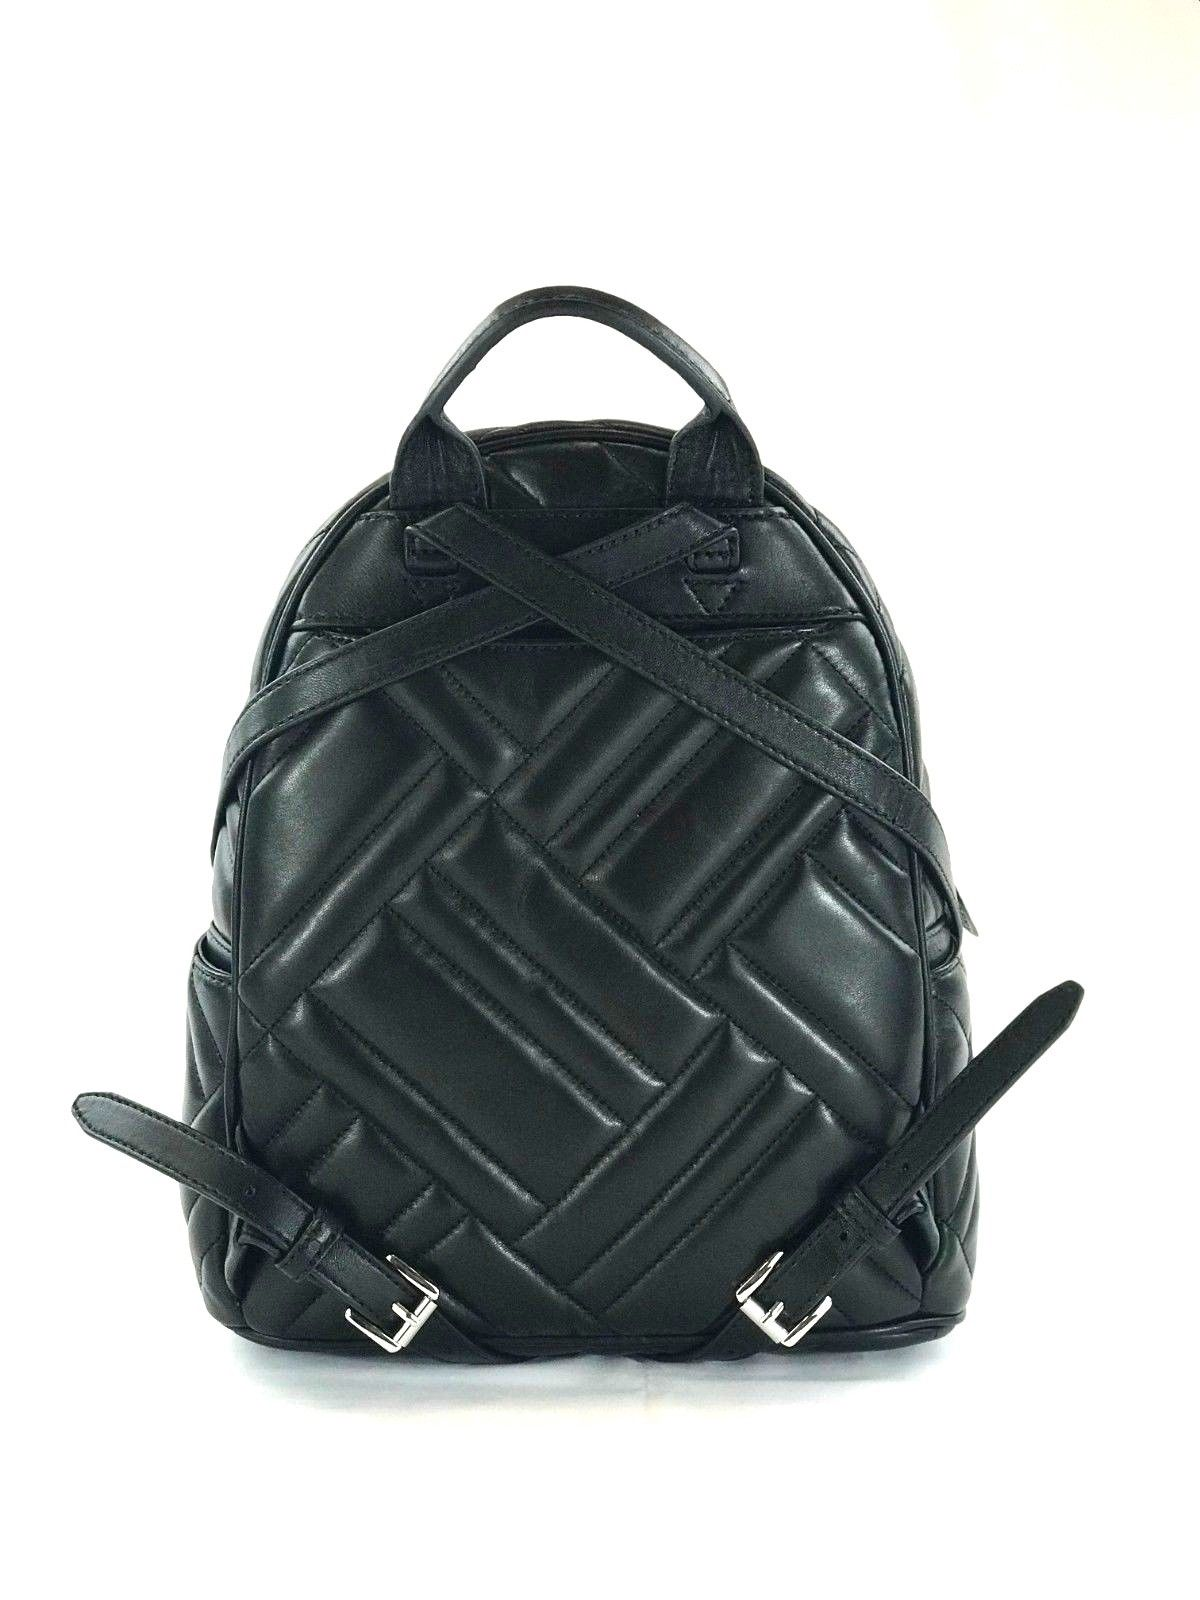 d6e027f9bc632f Michael Kors - NEW WOMENS MICHAEL KORS ABBEY MEDIUM BLACK GEO QUILTED  LEATHER BACKPACK BAG - Walmart.com